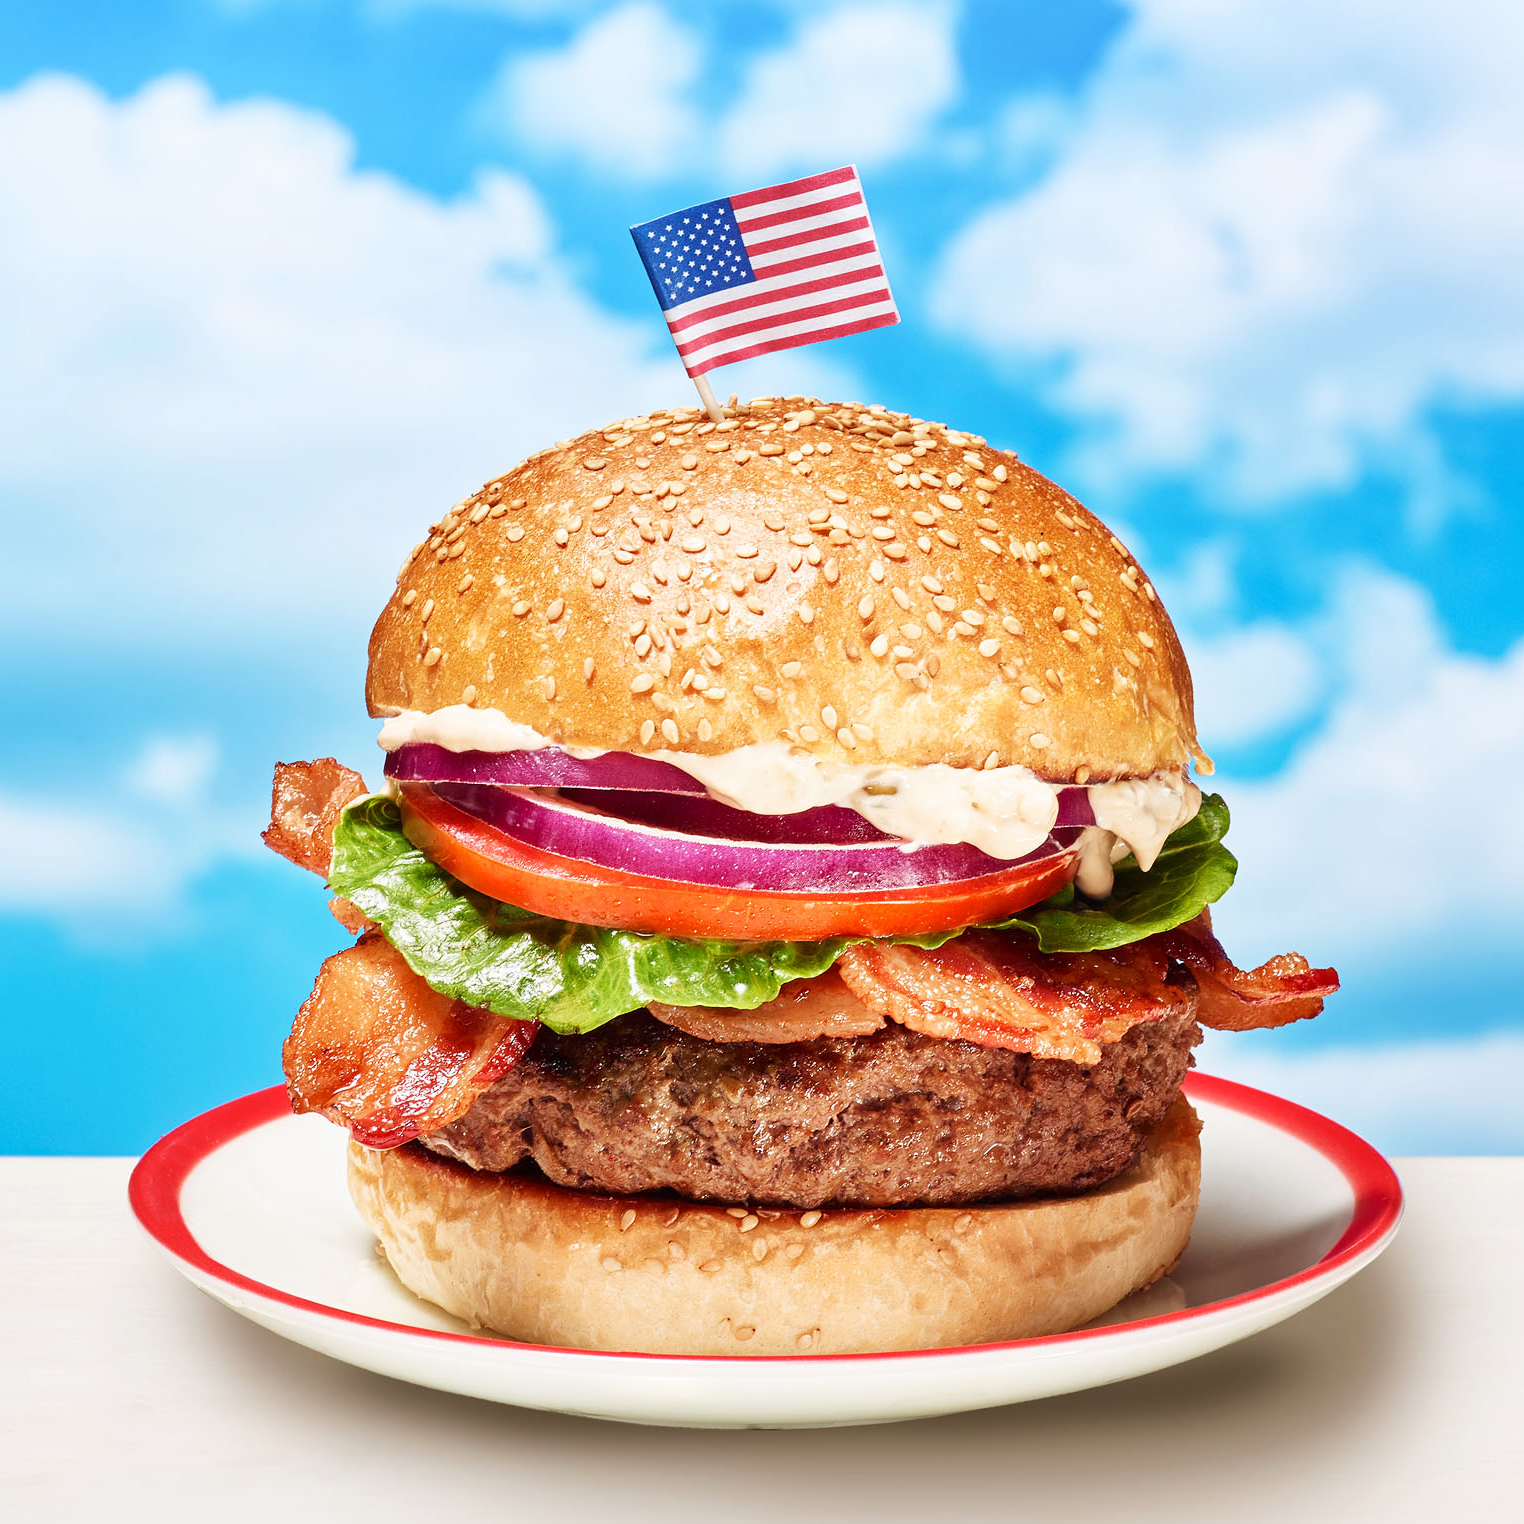 Burgers with Red, White & Blue Special Sauce, Bacon, Lettuce, Tomato & Onion